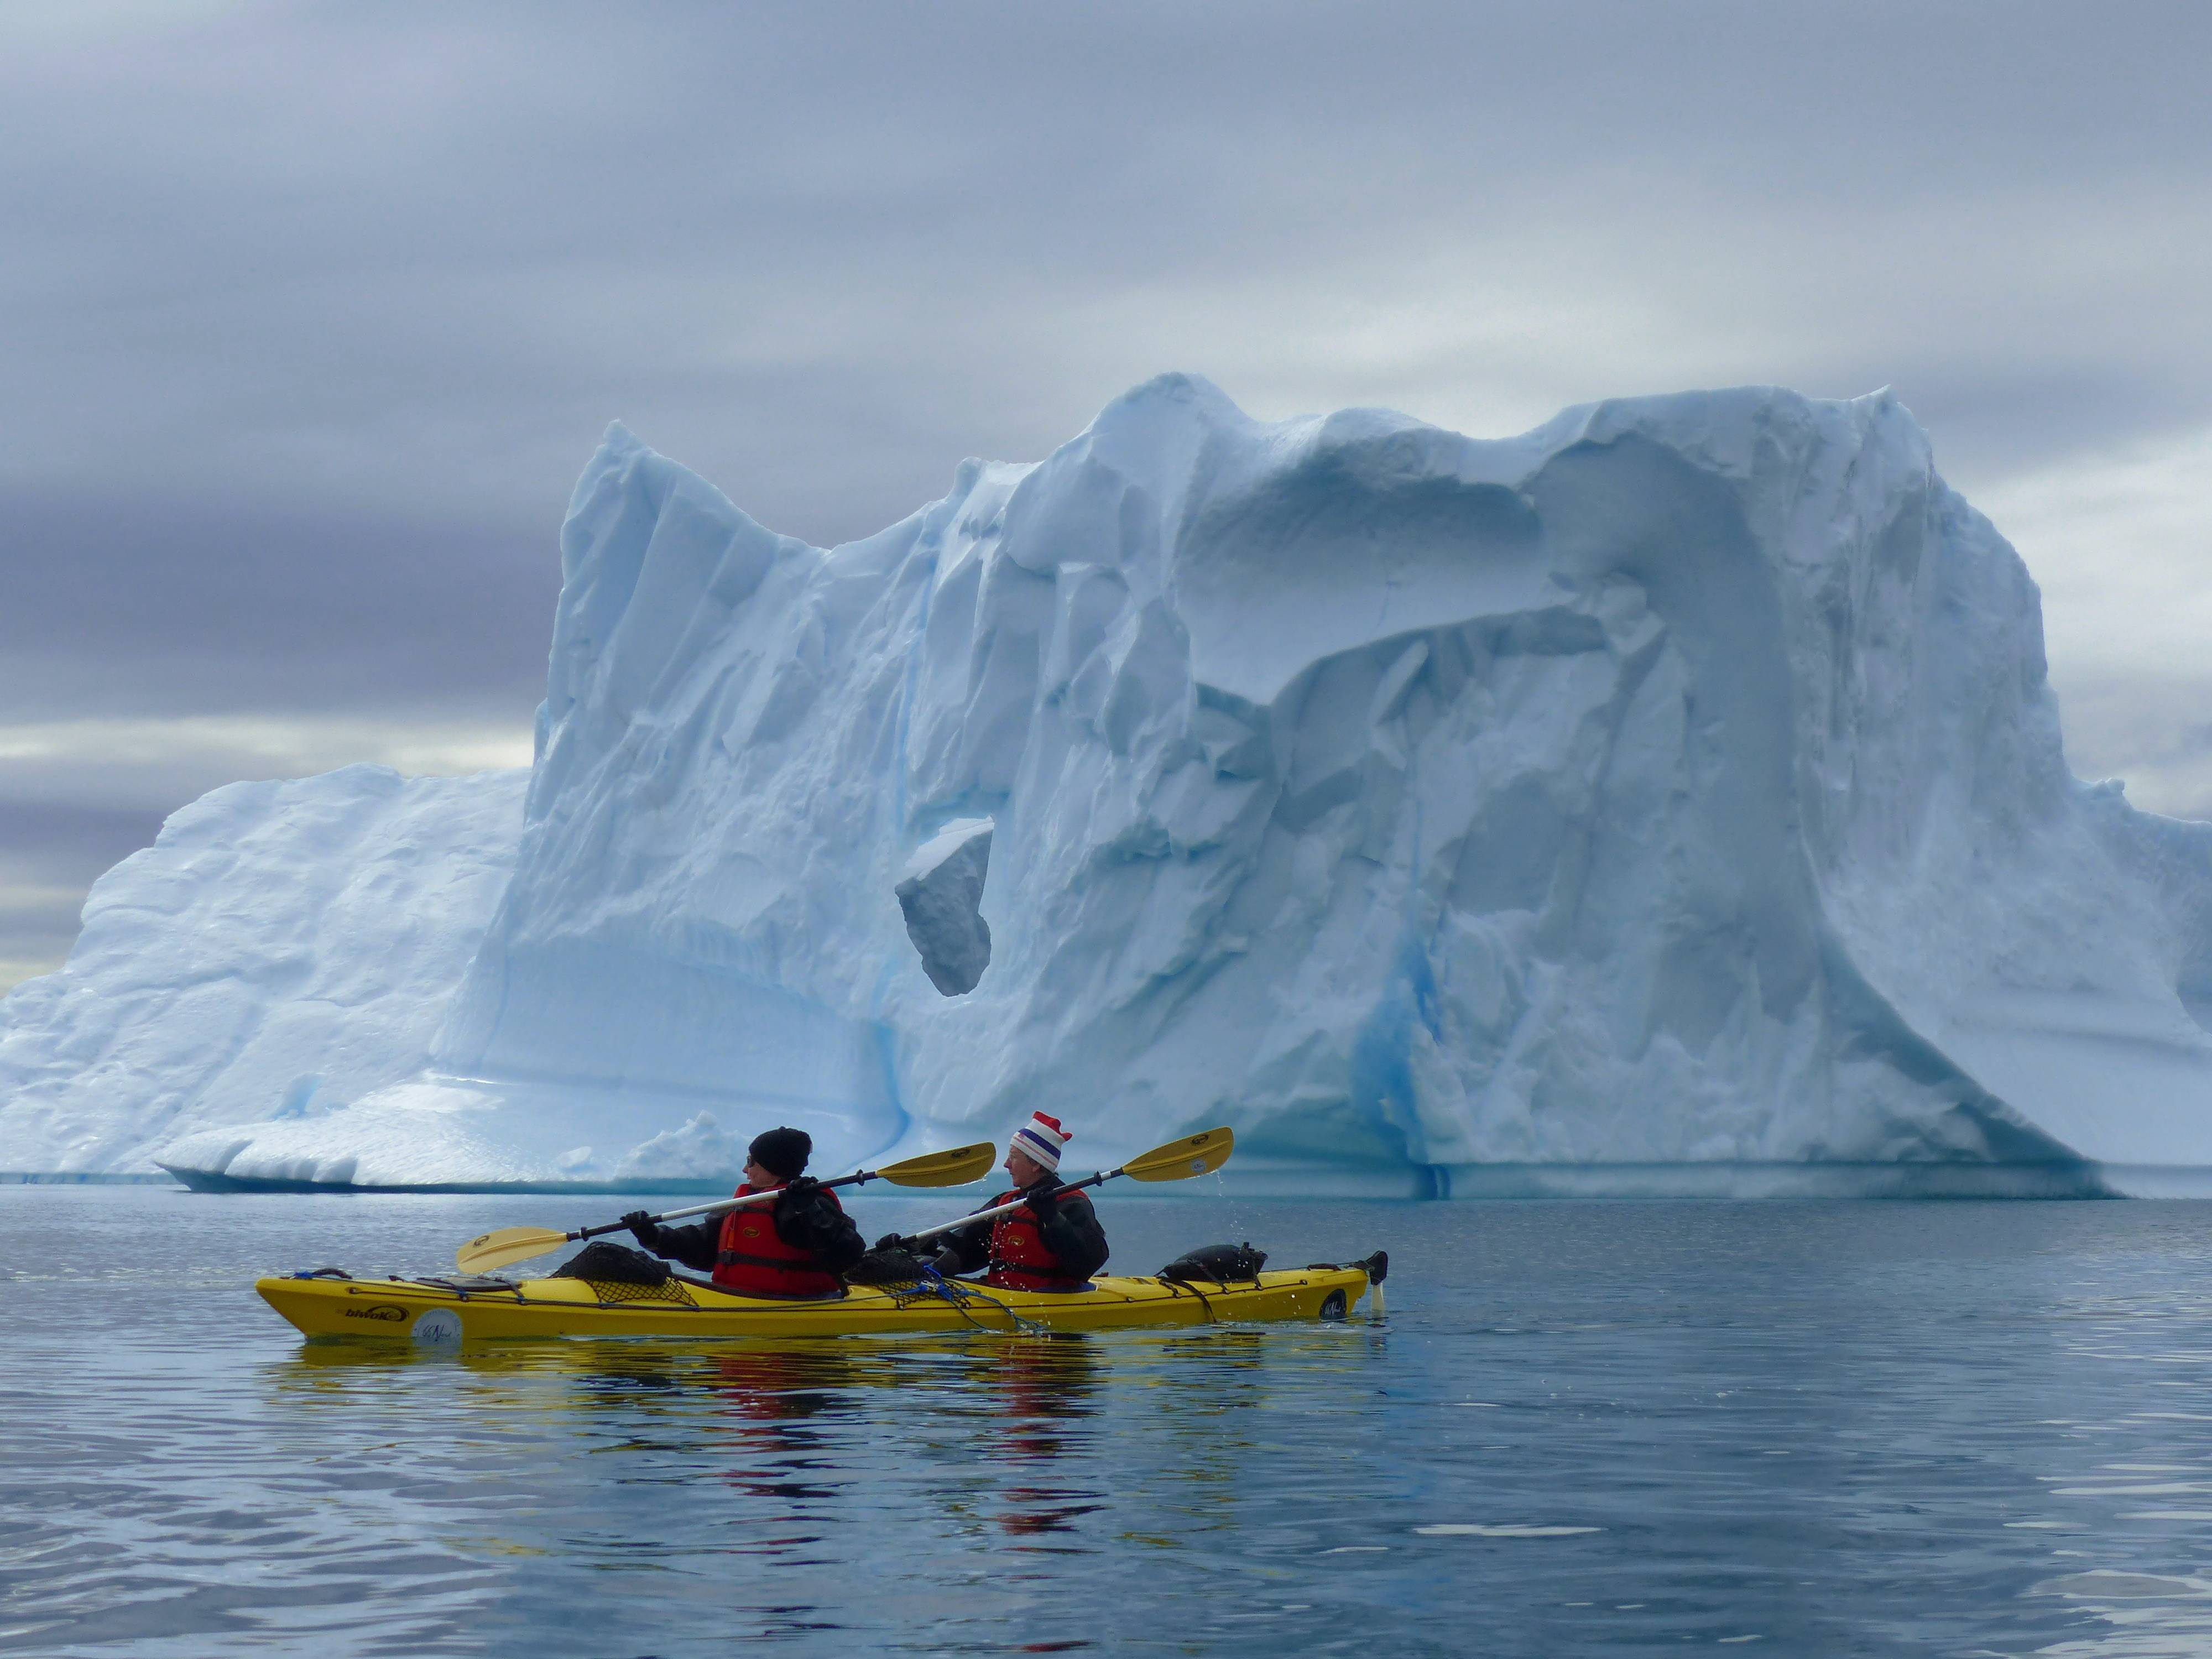 Photo 1: Faire du kayak au milieu des icebergs